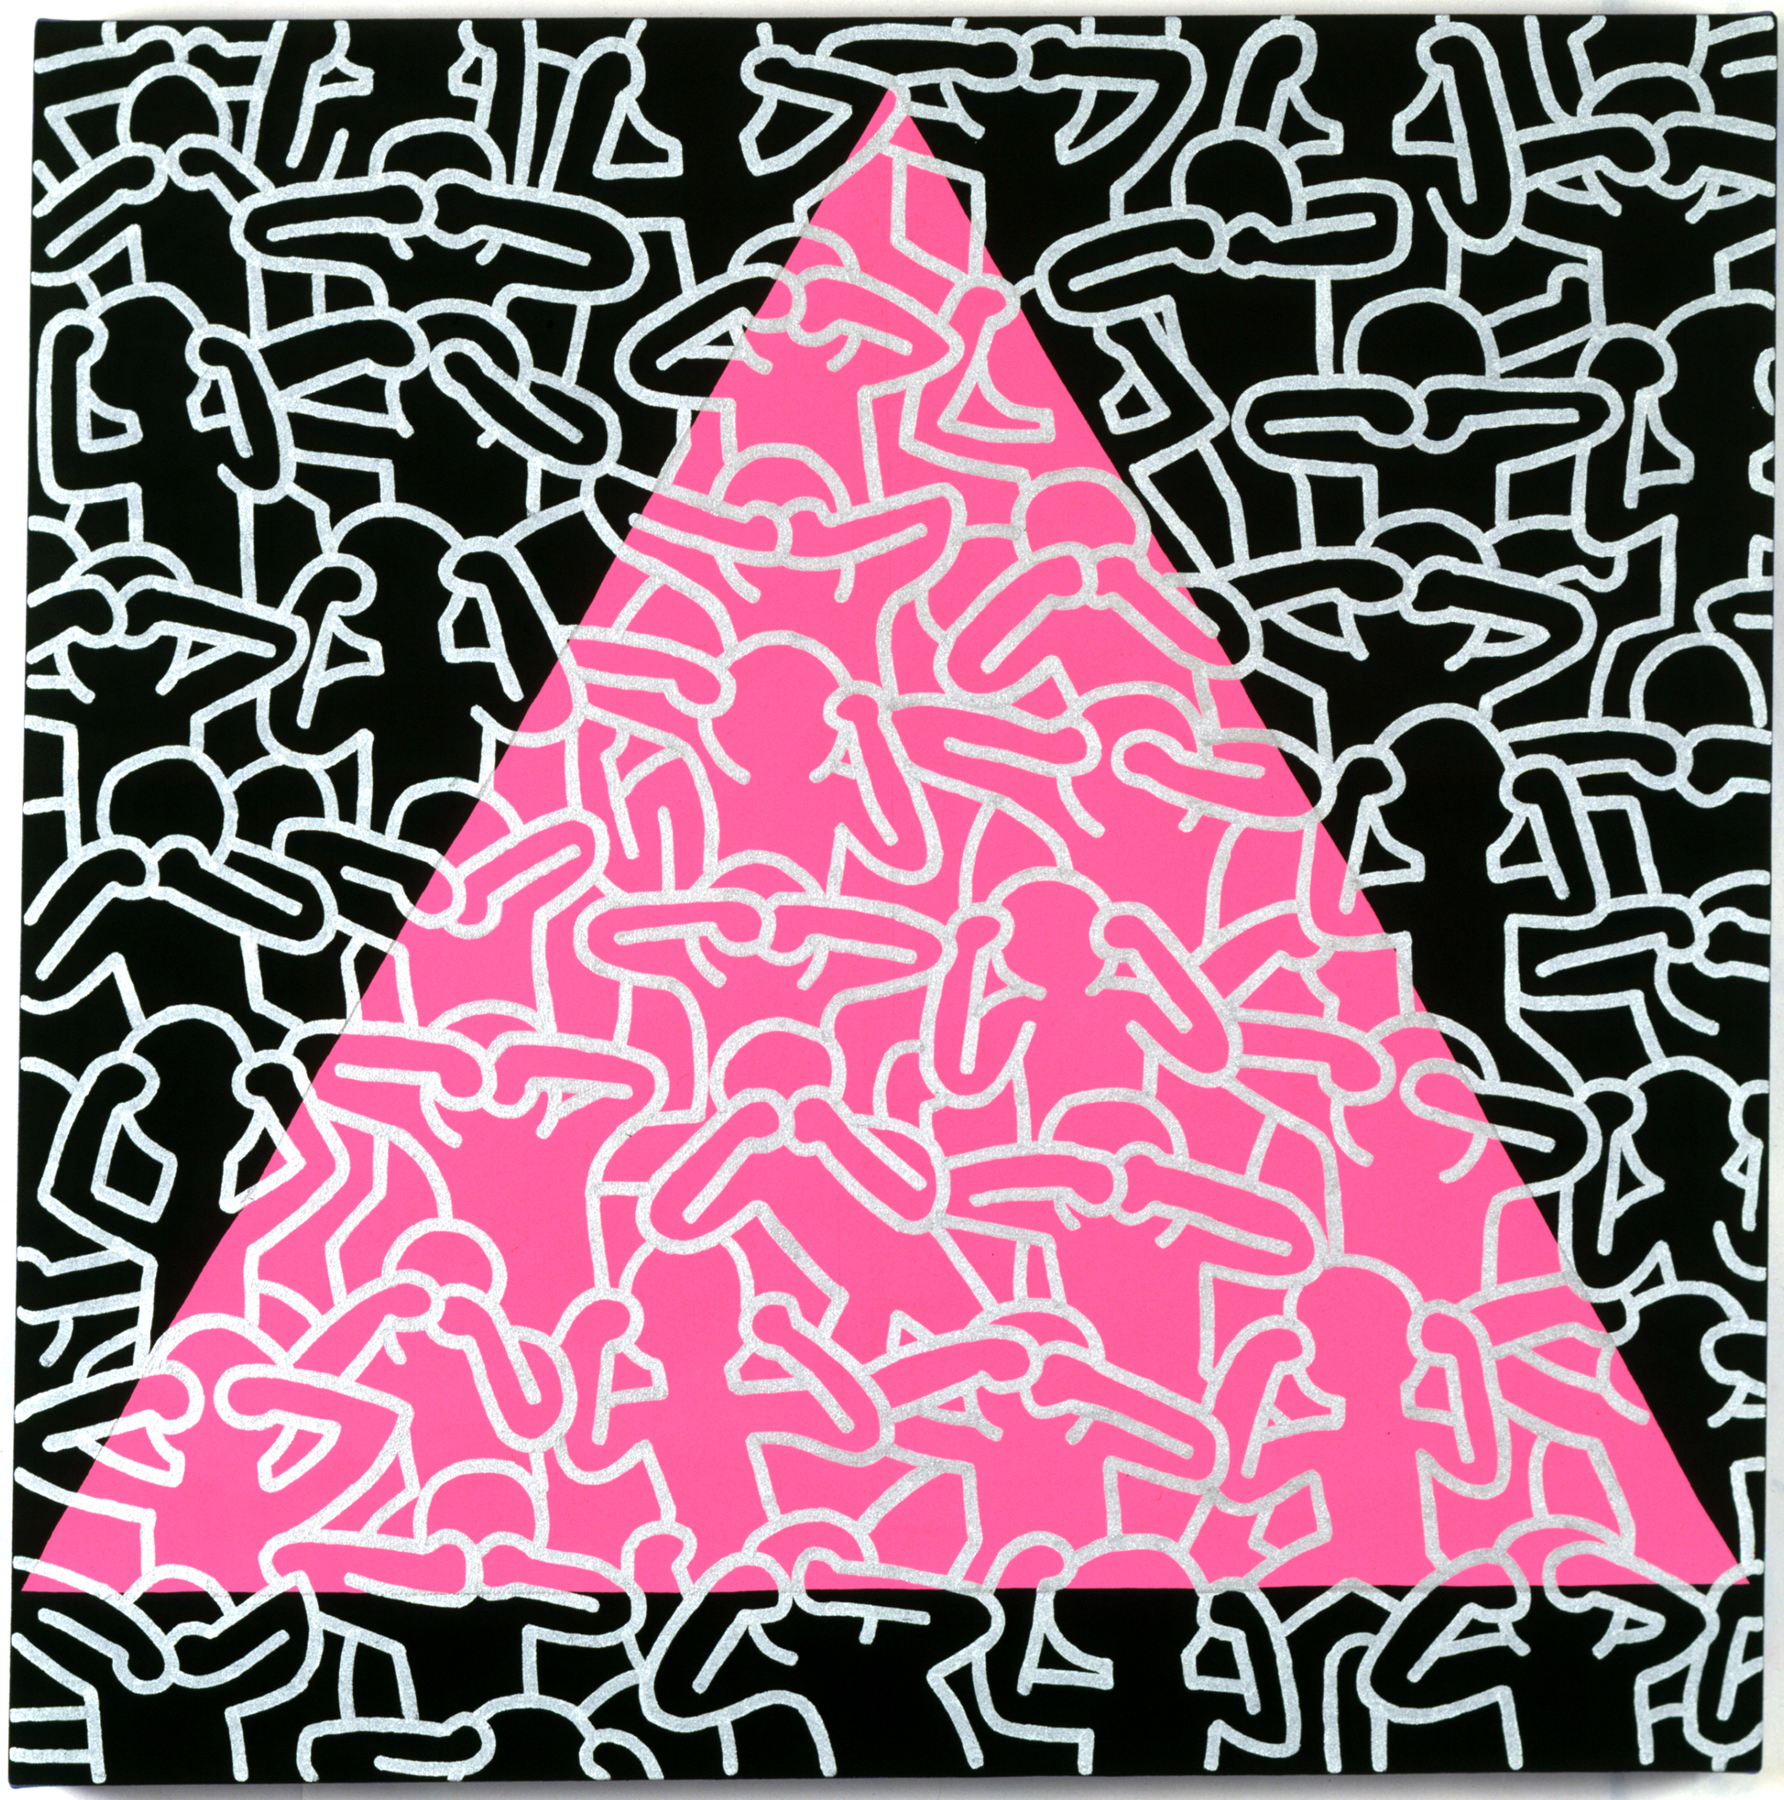 haring foundation blog